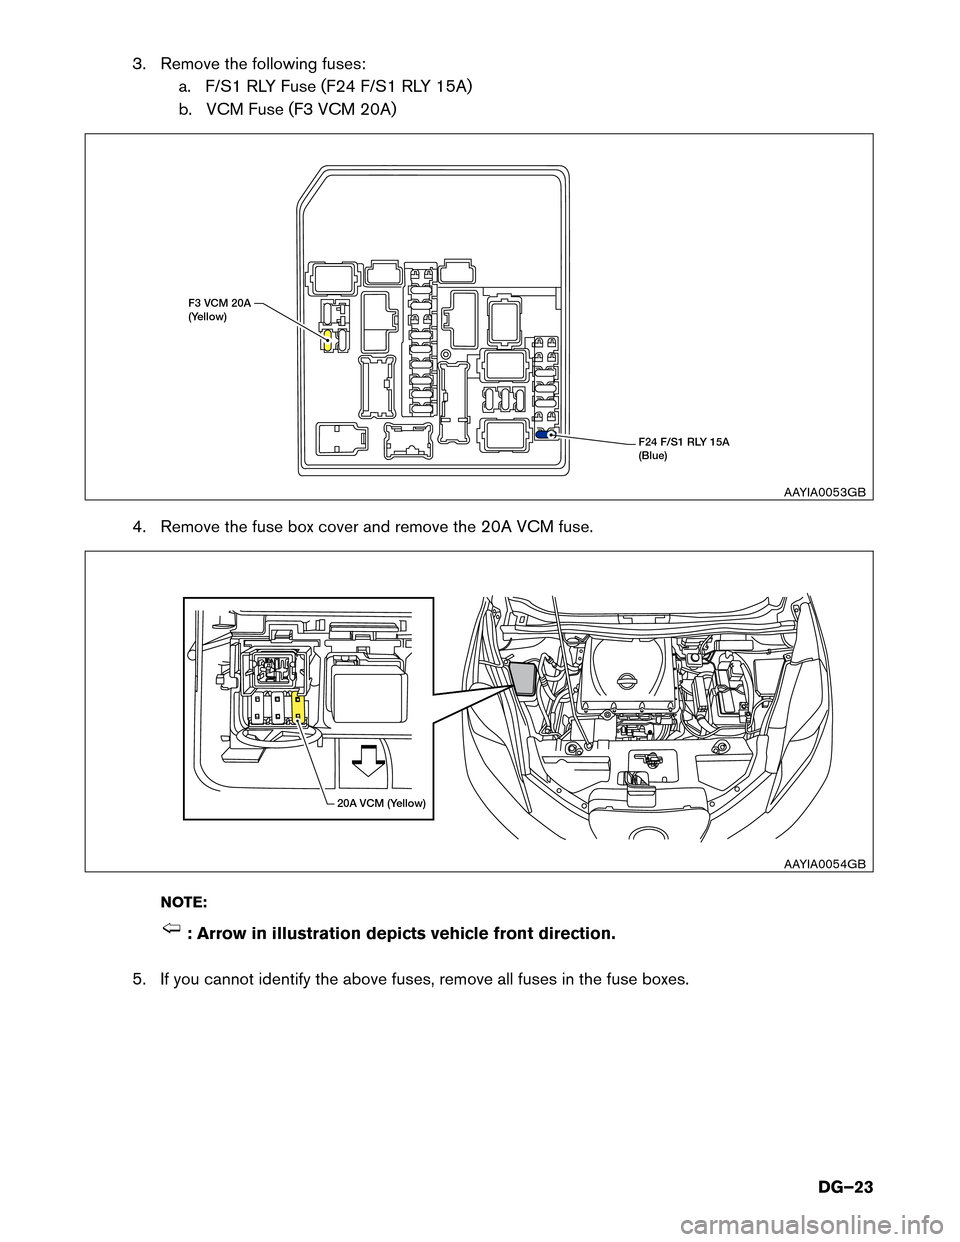 Nissan Leaf Fuse Box Diagram Detailed Wiring Diagrams 2013 Juke 2017 1 G Dismantling Guide Pathfinder